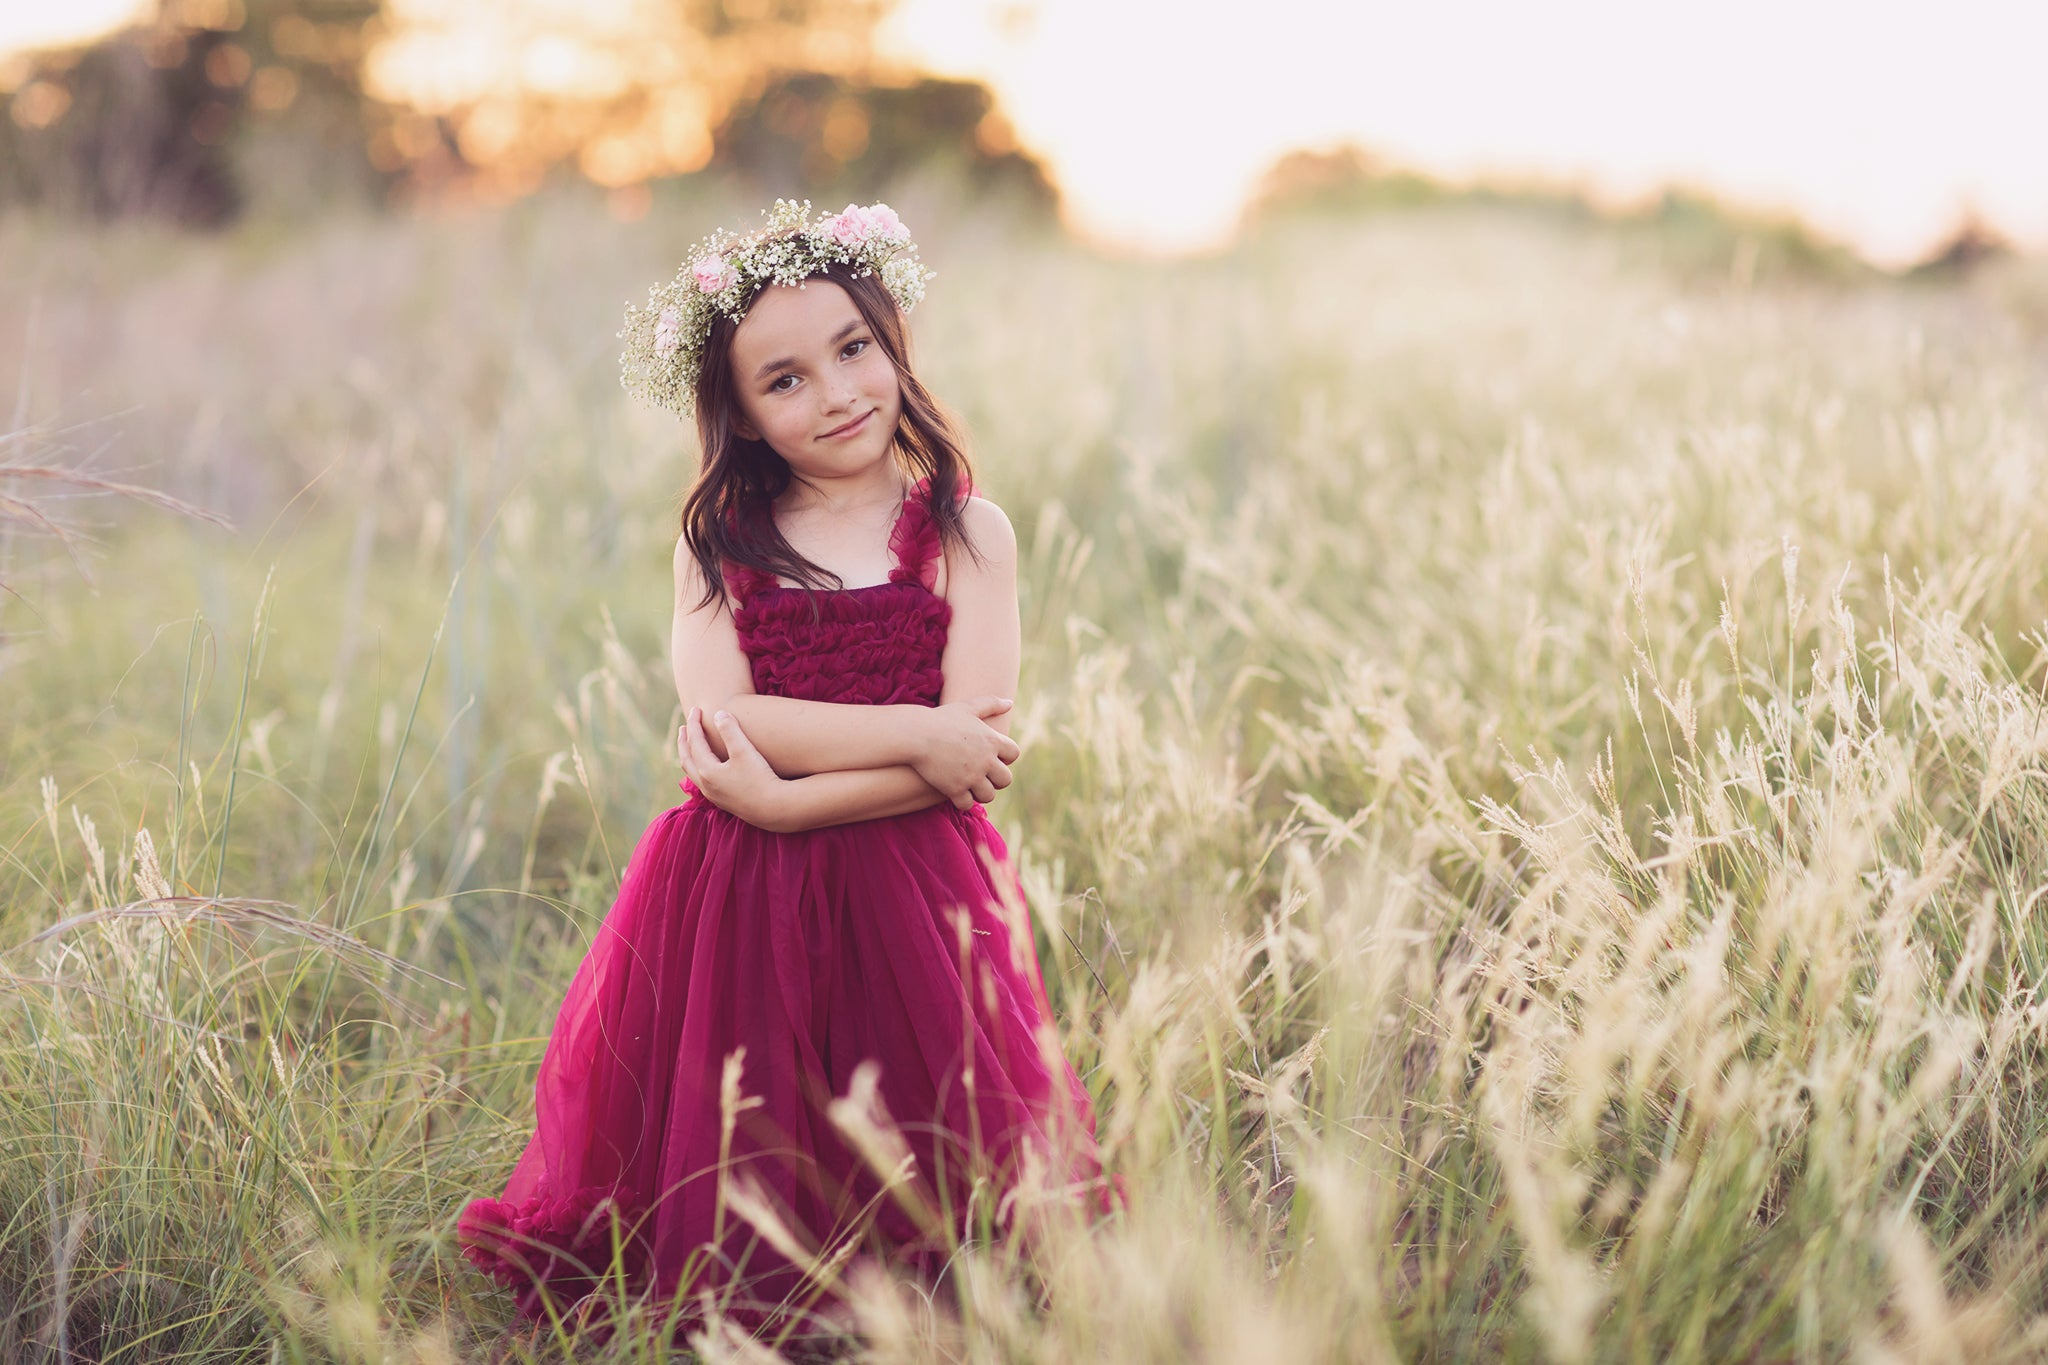 Pastel Dreams Favorite Photoshop Action Combo added to photo of a young girl in a field